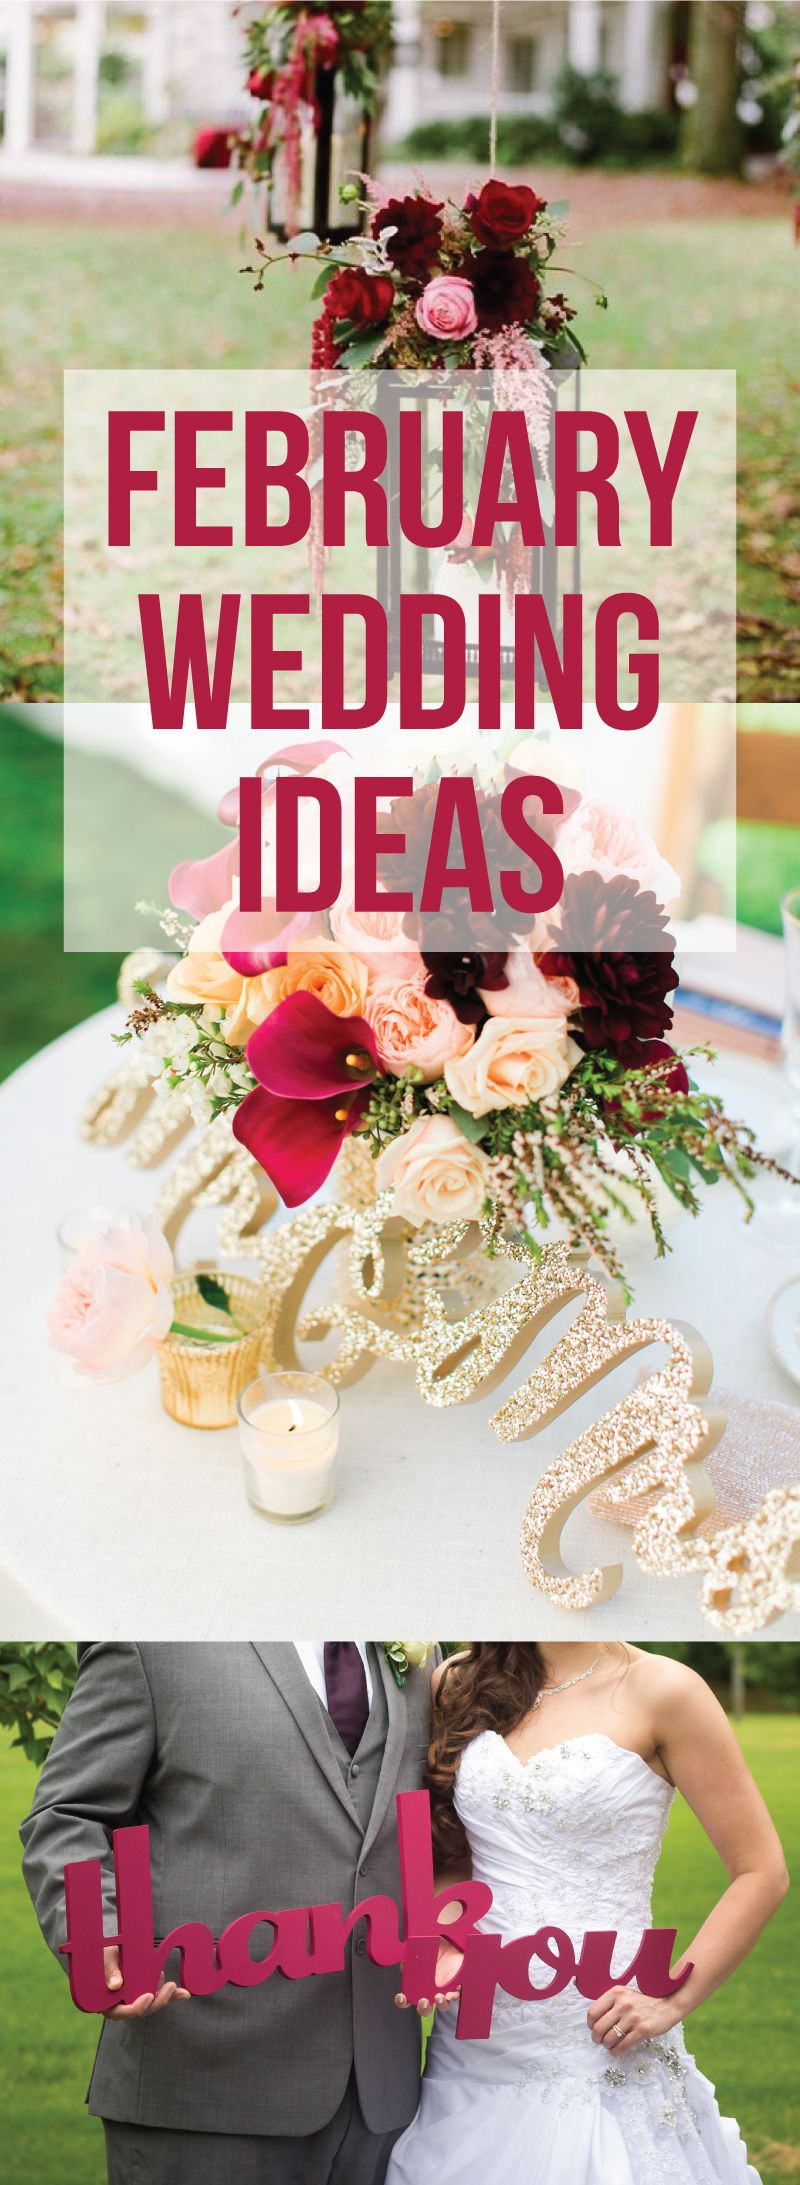 Hundreds Of Great Ideas For Your Romantic February Wedding Www